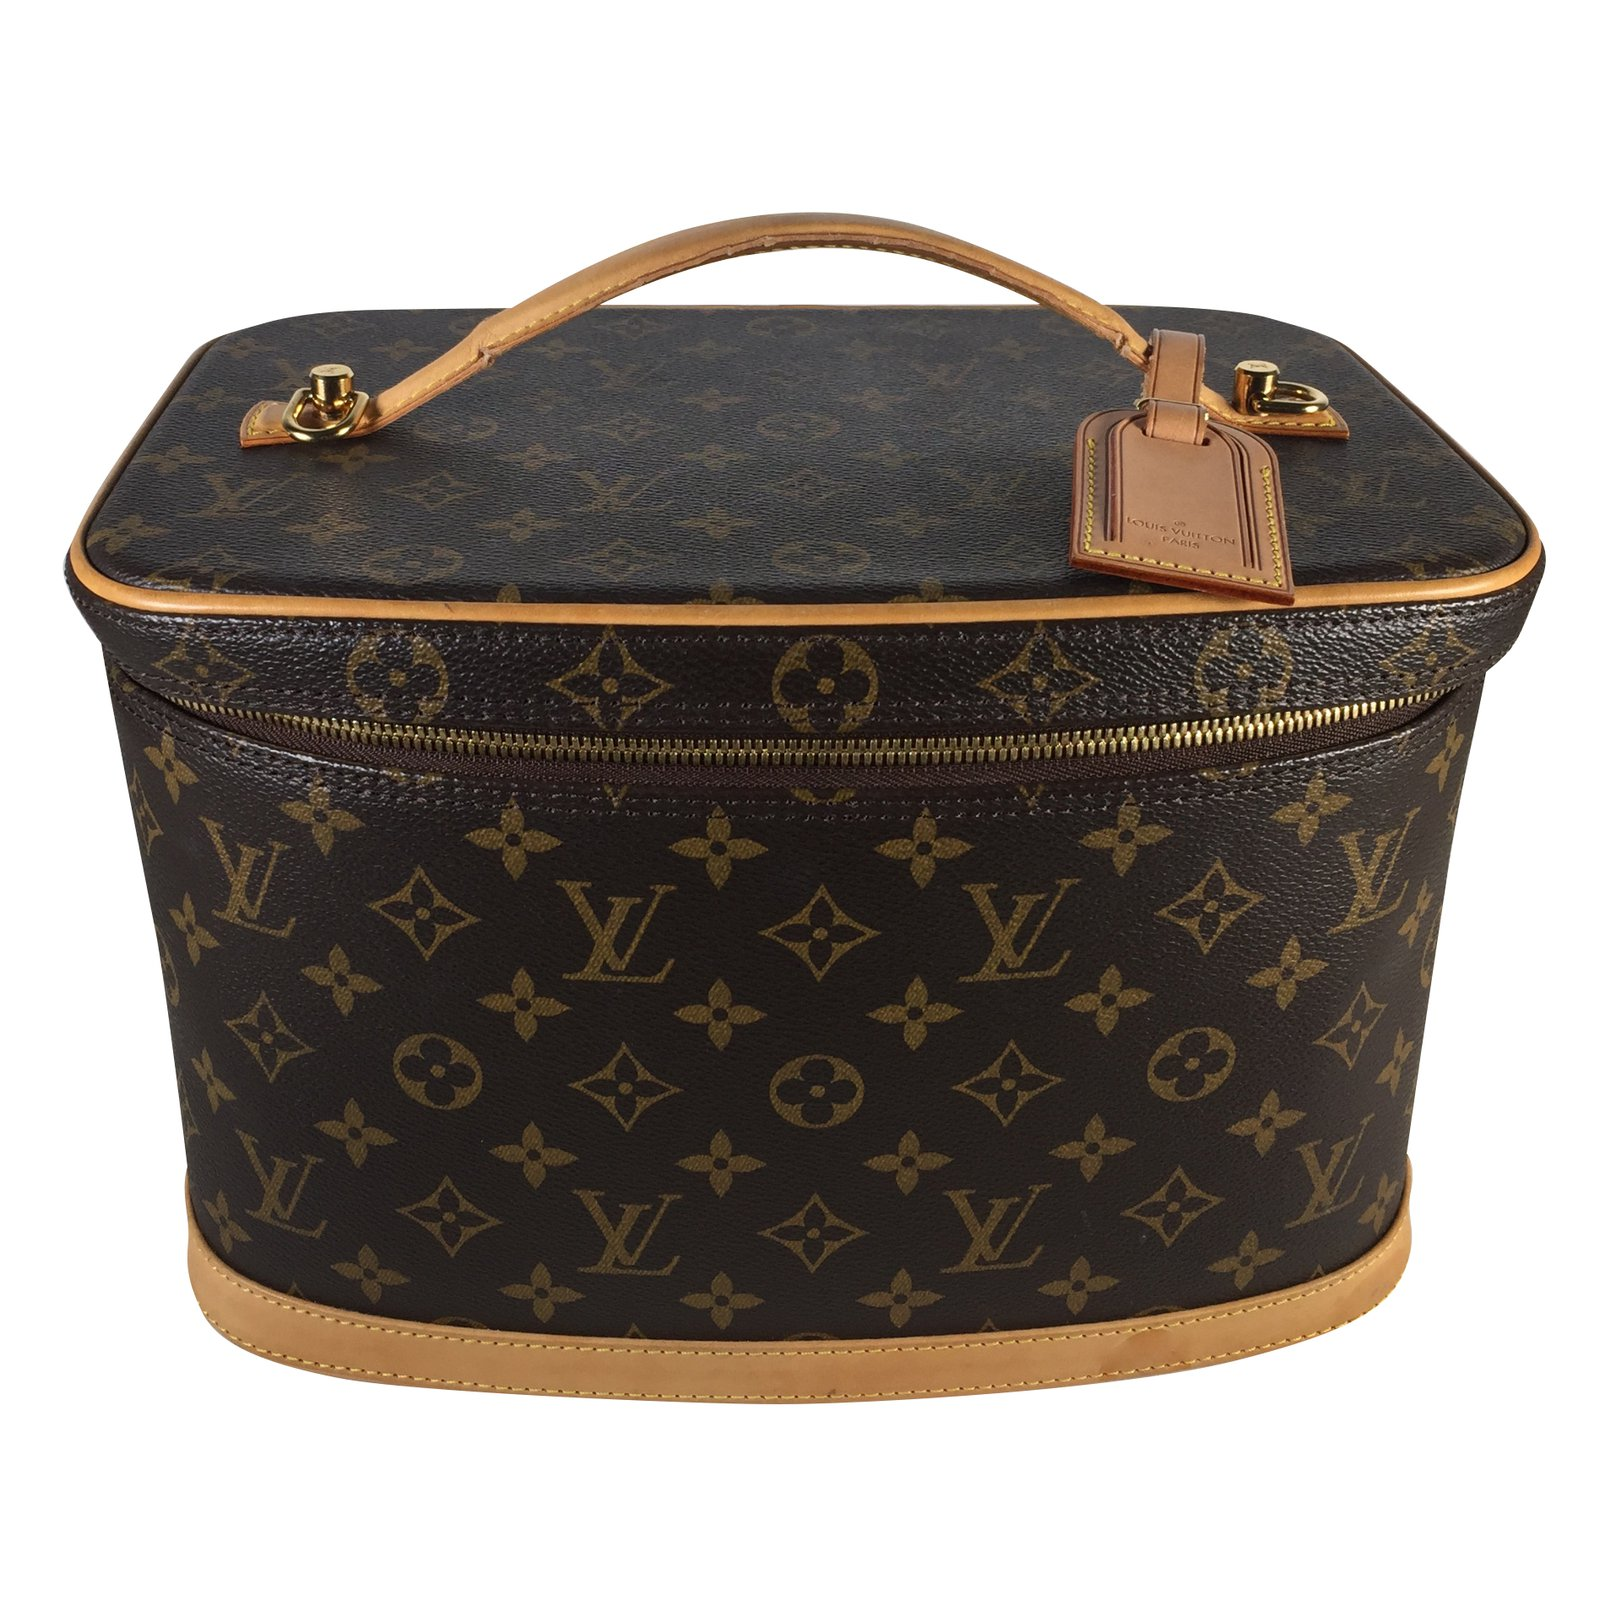 e21f2dc848af3 Louis Vuitton Nice vanity case Travel bag Leather,Cloth Brown ref .